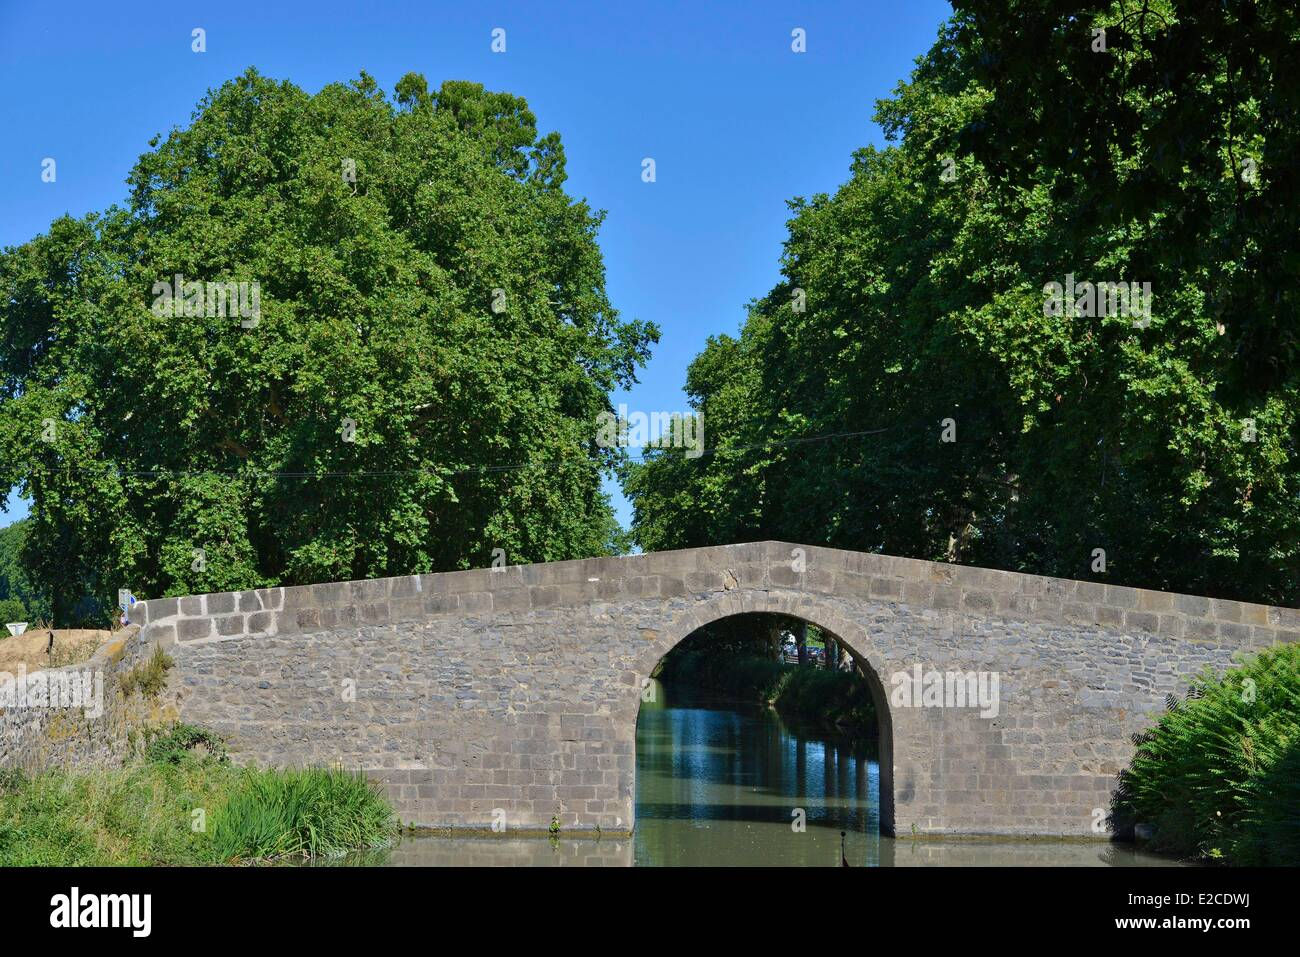 France, Herault, Cers, Canal du Midi, listed as World Heritage by UNESCO, Bridge of Caylus - Stock Image